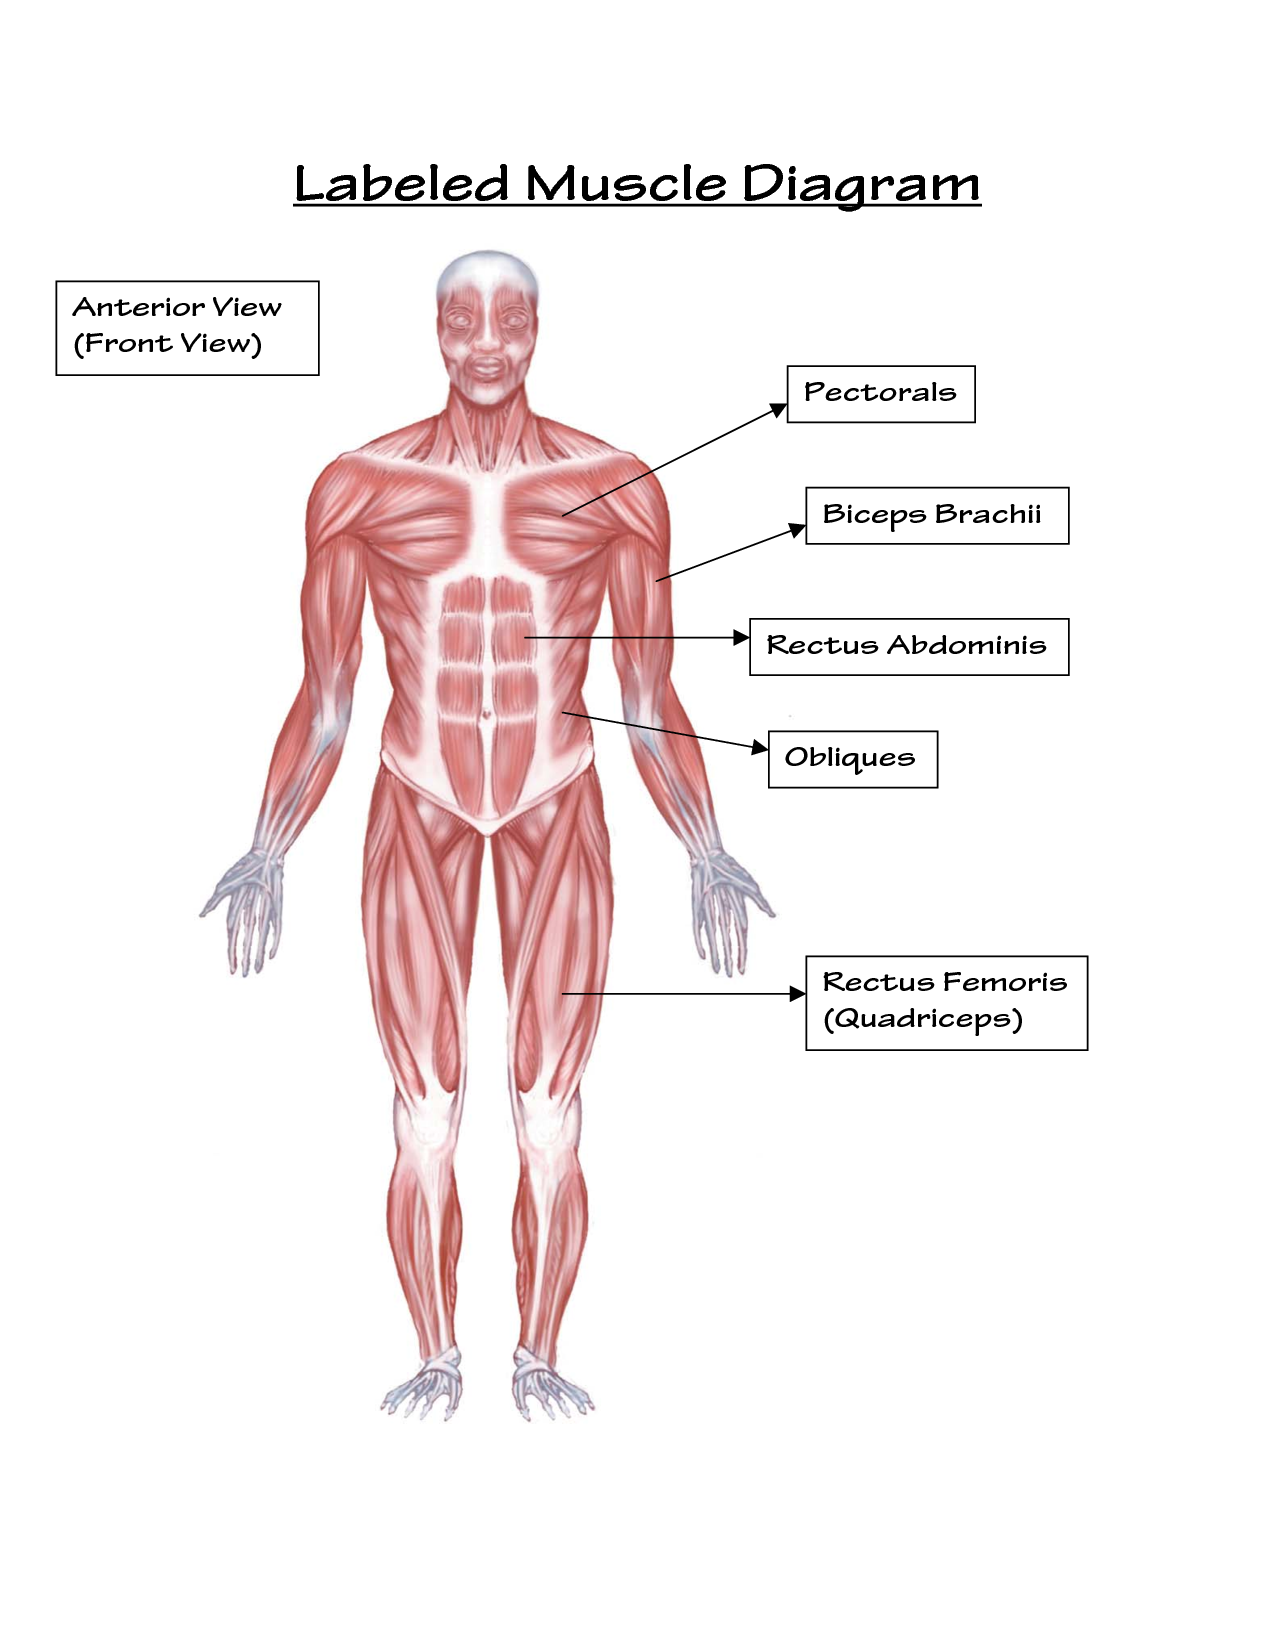 Simple labeled muscle diagram human body diagram pinterest simple labeled muscle diagram human body pooptronica